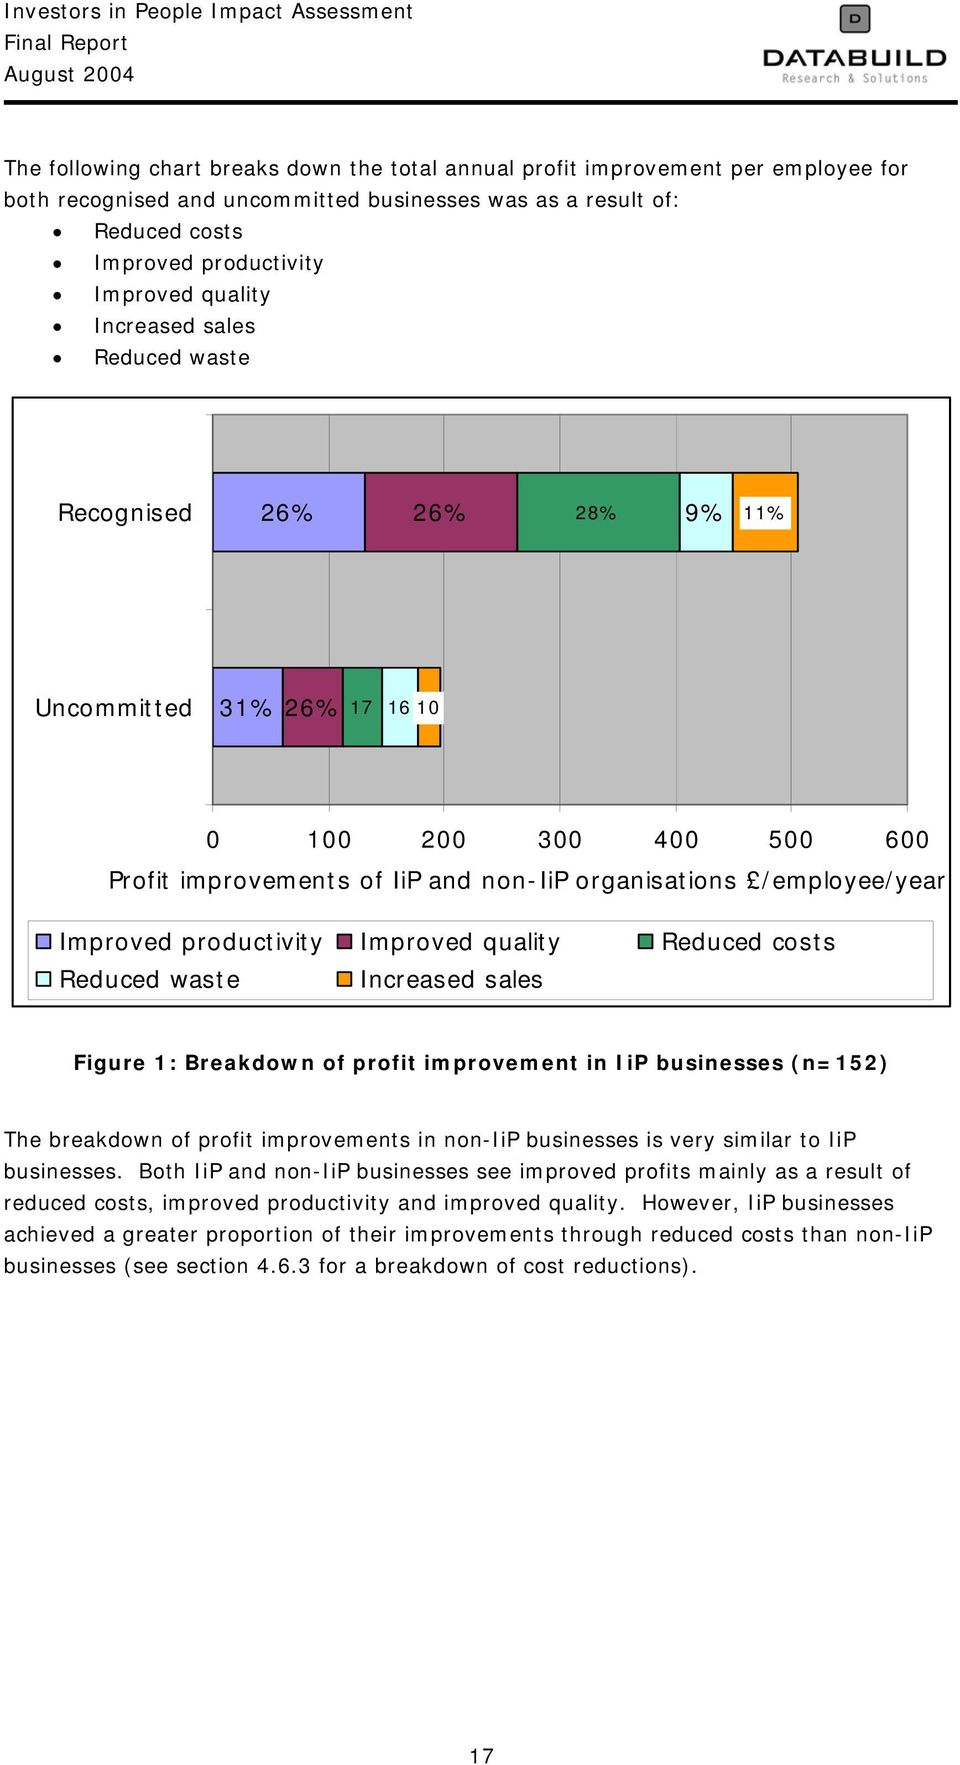 productivity Improved quality Reduced costs Reduced waste Increased sales Figure 1: Breakdown of profit improvement in IiP businesses (n=152) The breakdown of profit improvements in non-iip